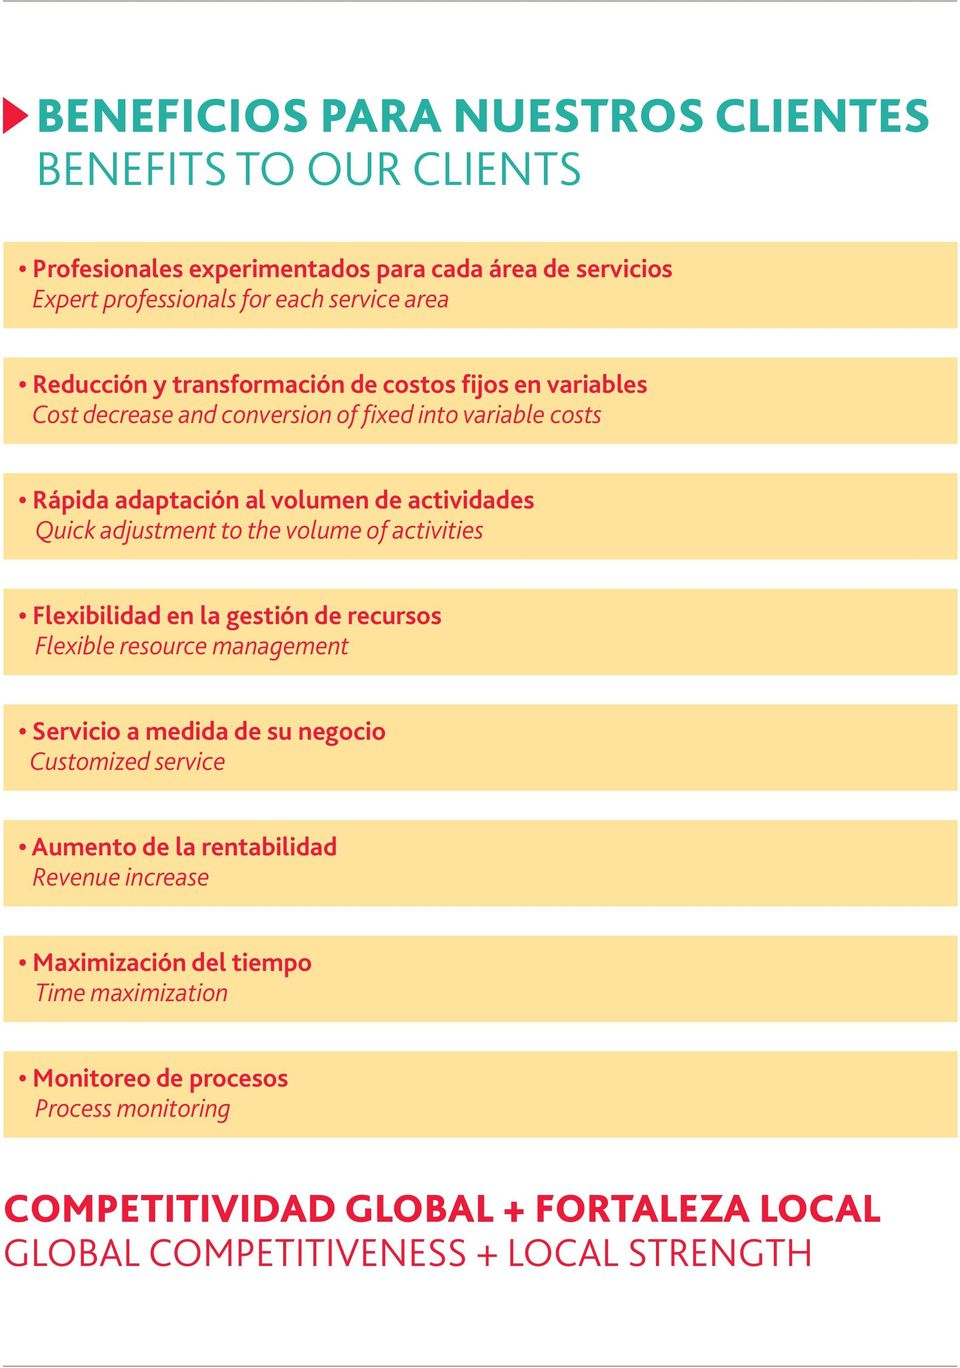 volume of activities Flexibilidad en la gestión de recursos Flexible resource management Servicio a medida de su negocio Customized service Aumento de la rentabilidad